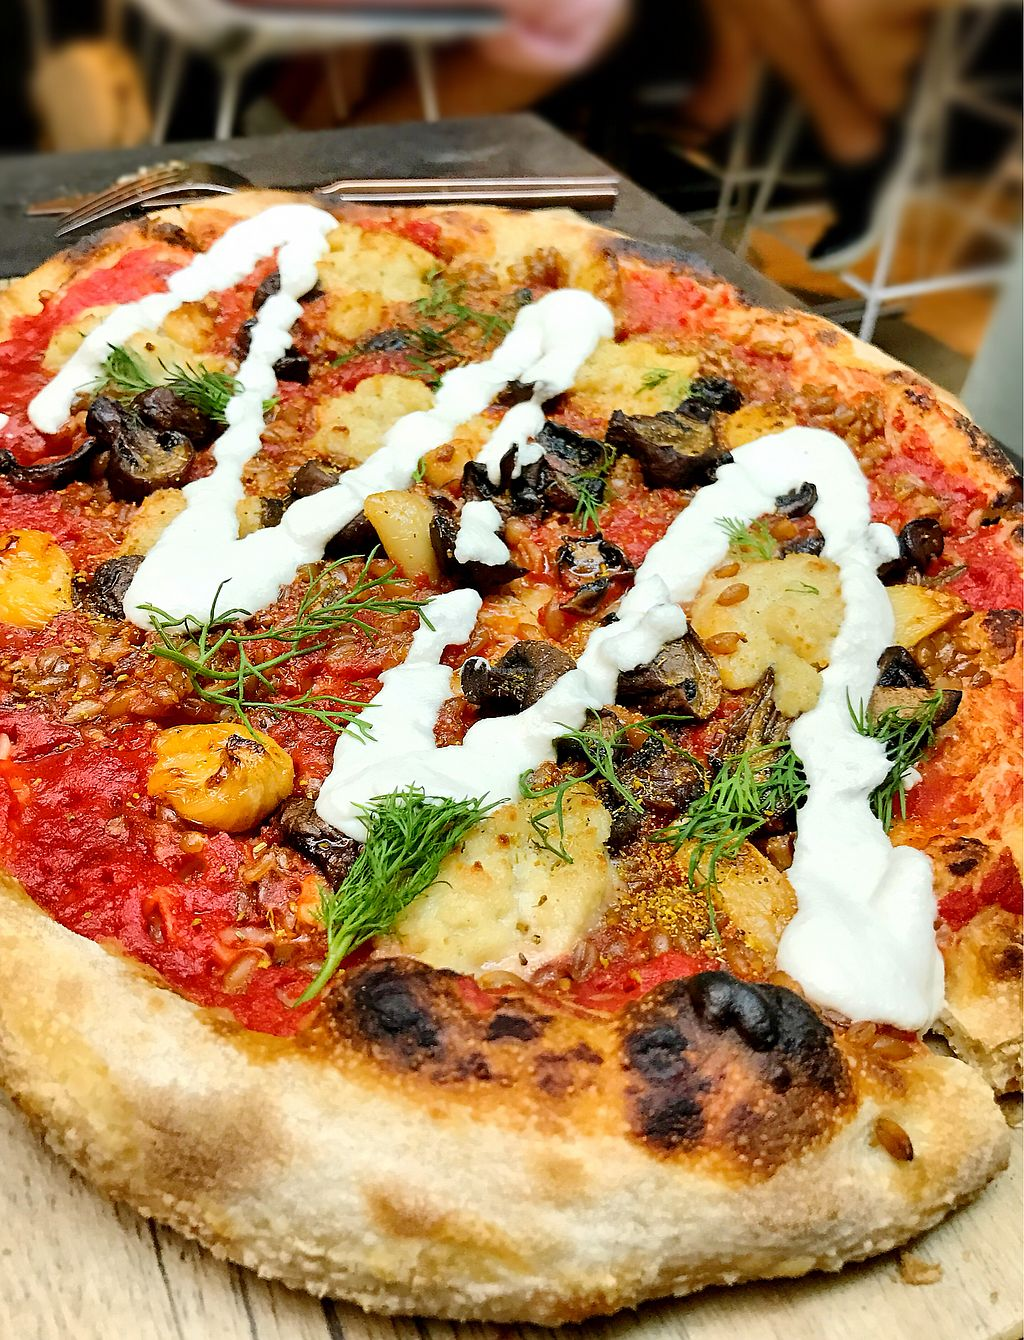 """Photo of Planta  by <a href=""""/members/profile/ElleMarie"""">ElleMarie</a> <br/>Pizzas are amazing!  <br/> February 7, 2018  - <a href='/contact/abuse/image/81537/355841'>Report</a>"""